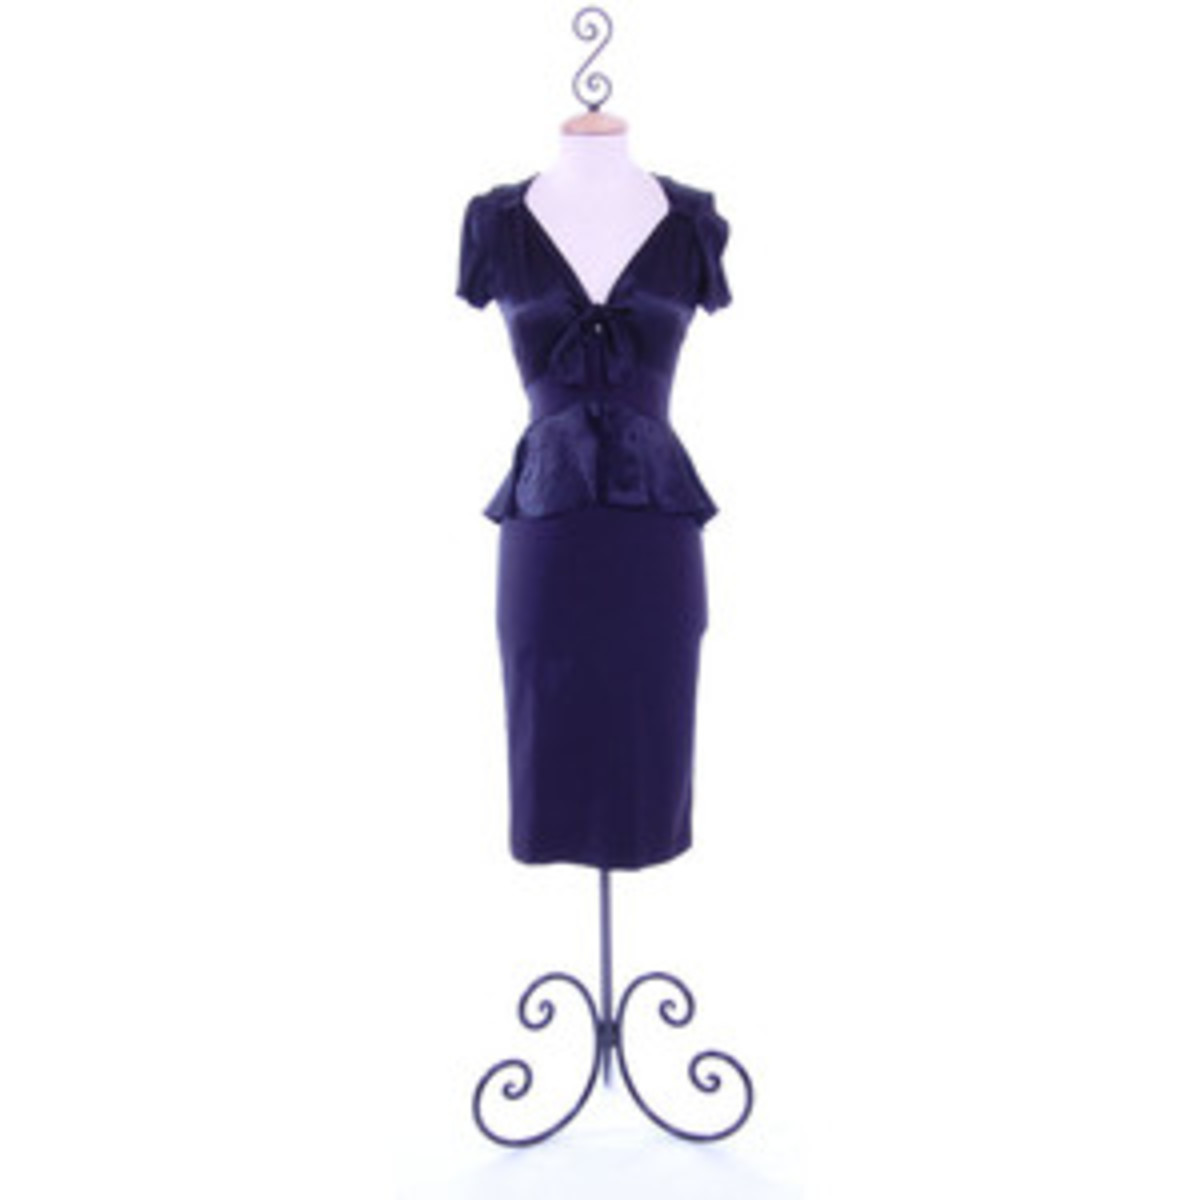 Great for hour glass, pear, and ruler shapes!  See the nice curves.  This dress has them whether or not you do.  So cute!